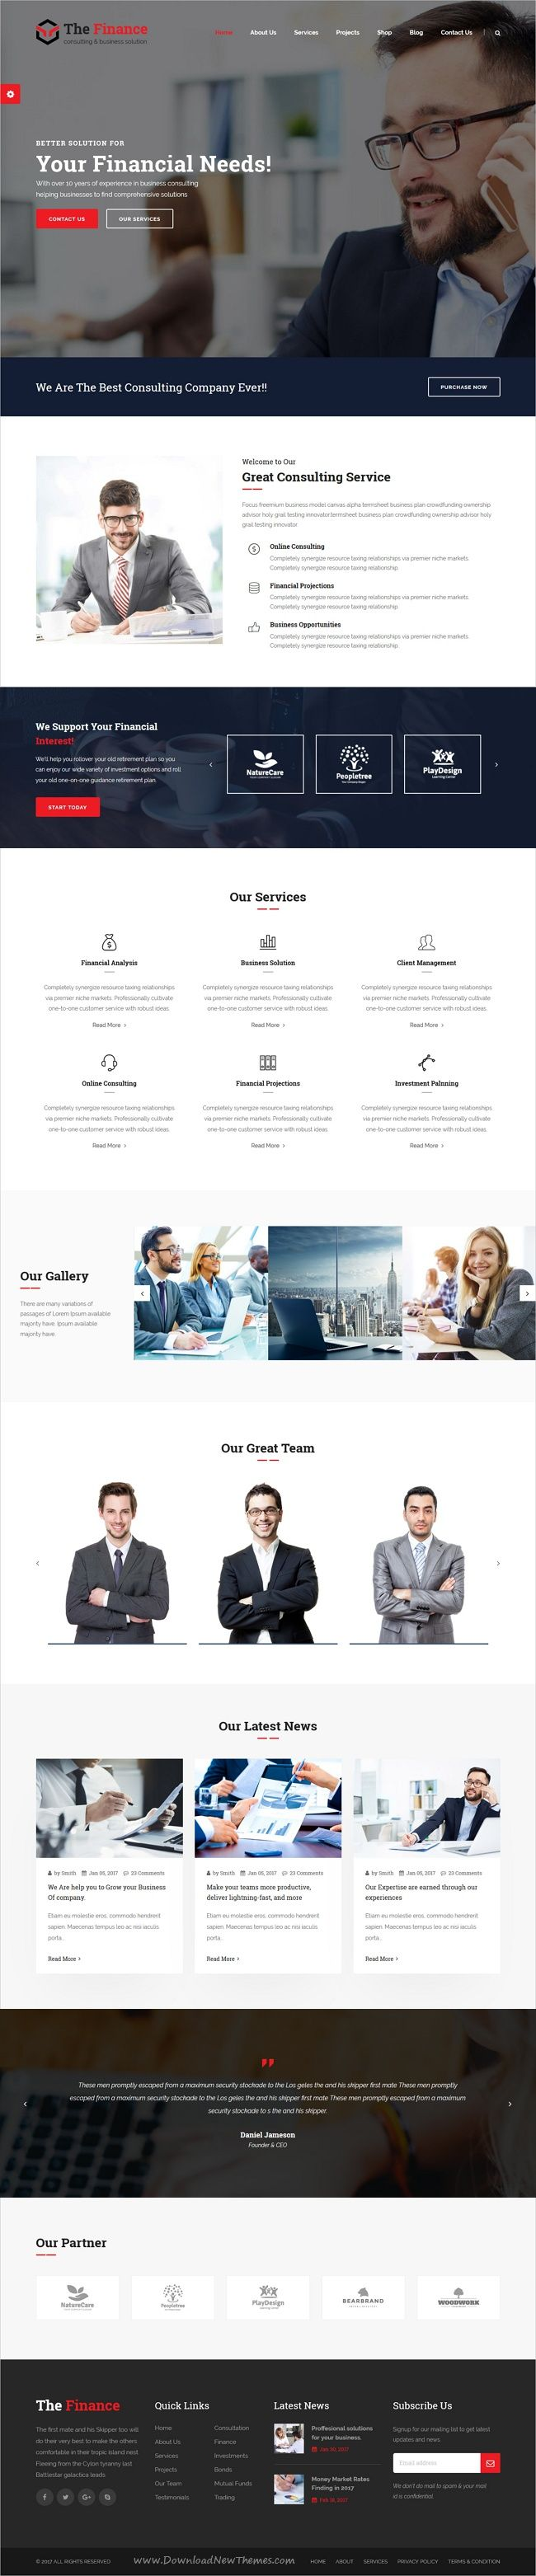 The finance is clean and modern design 3in1 #bootstrap template for #finance business #consulting and professional service website download now > https://themeforest.net/item/the-finance-business-consulting-and-professional-services-html-template/19956712?ref=Datasata